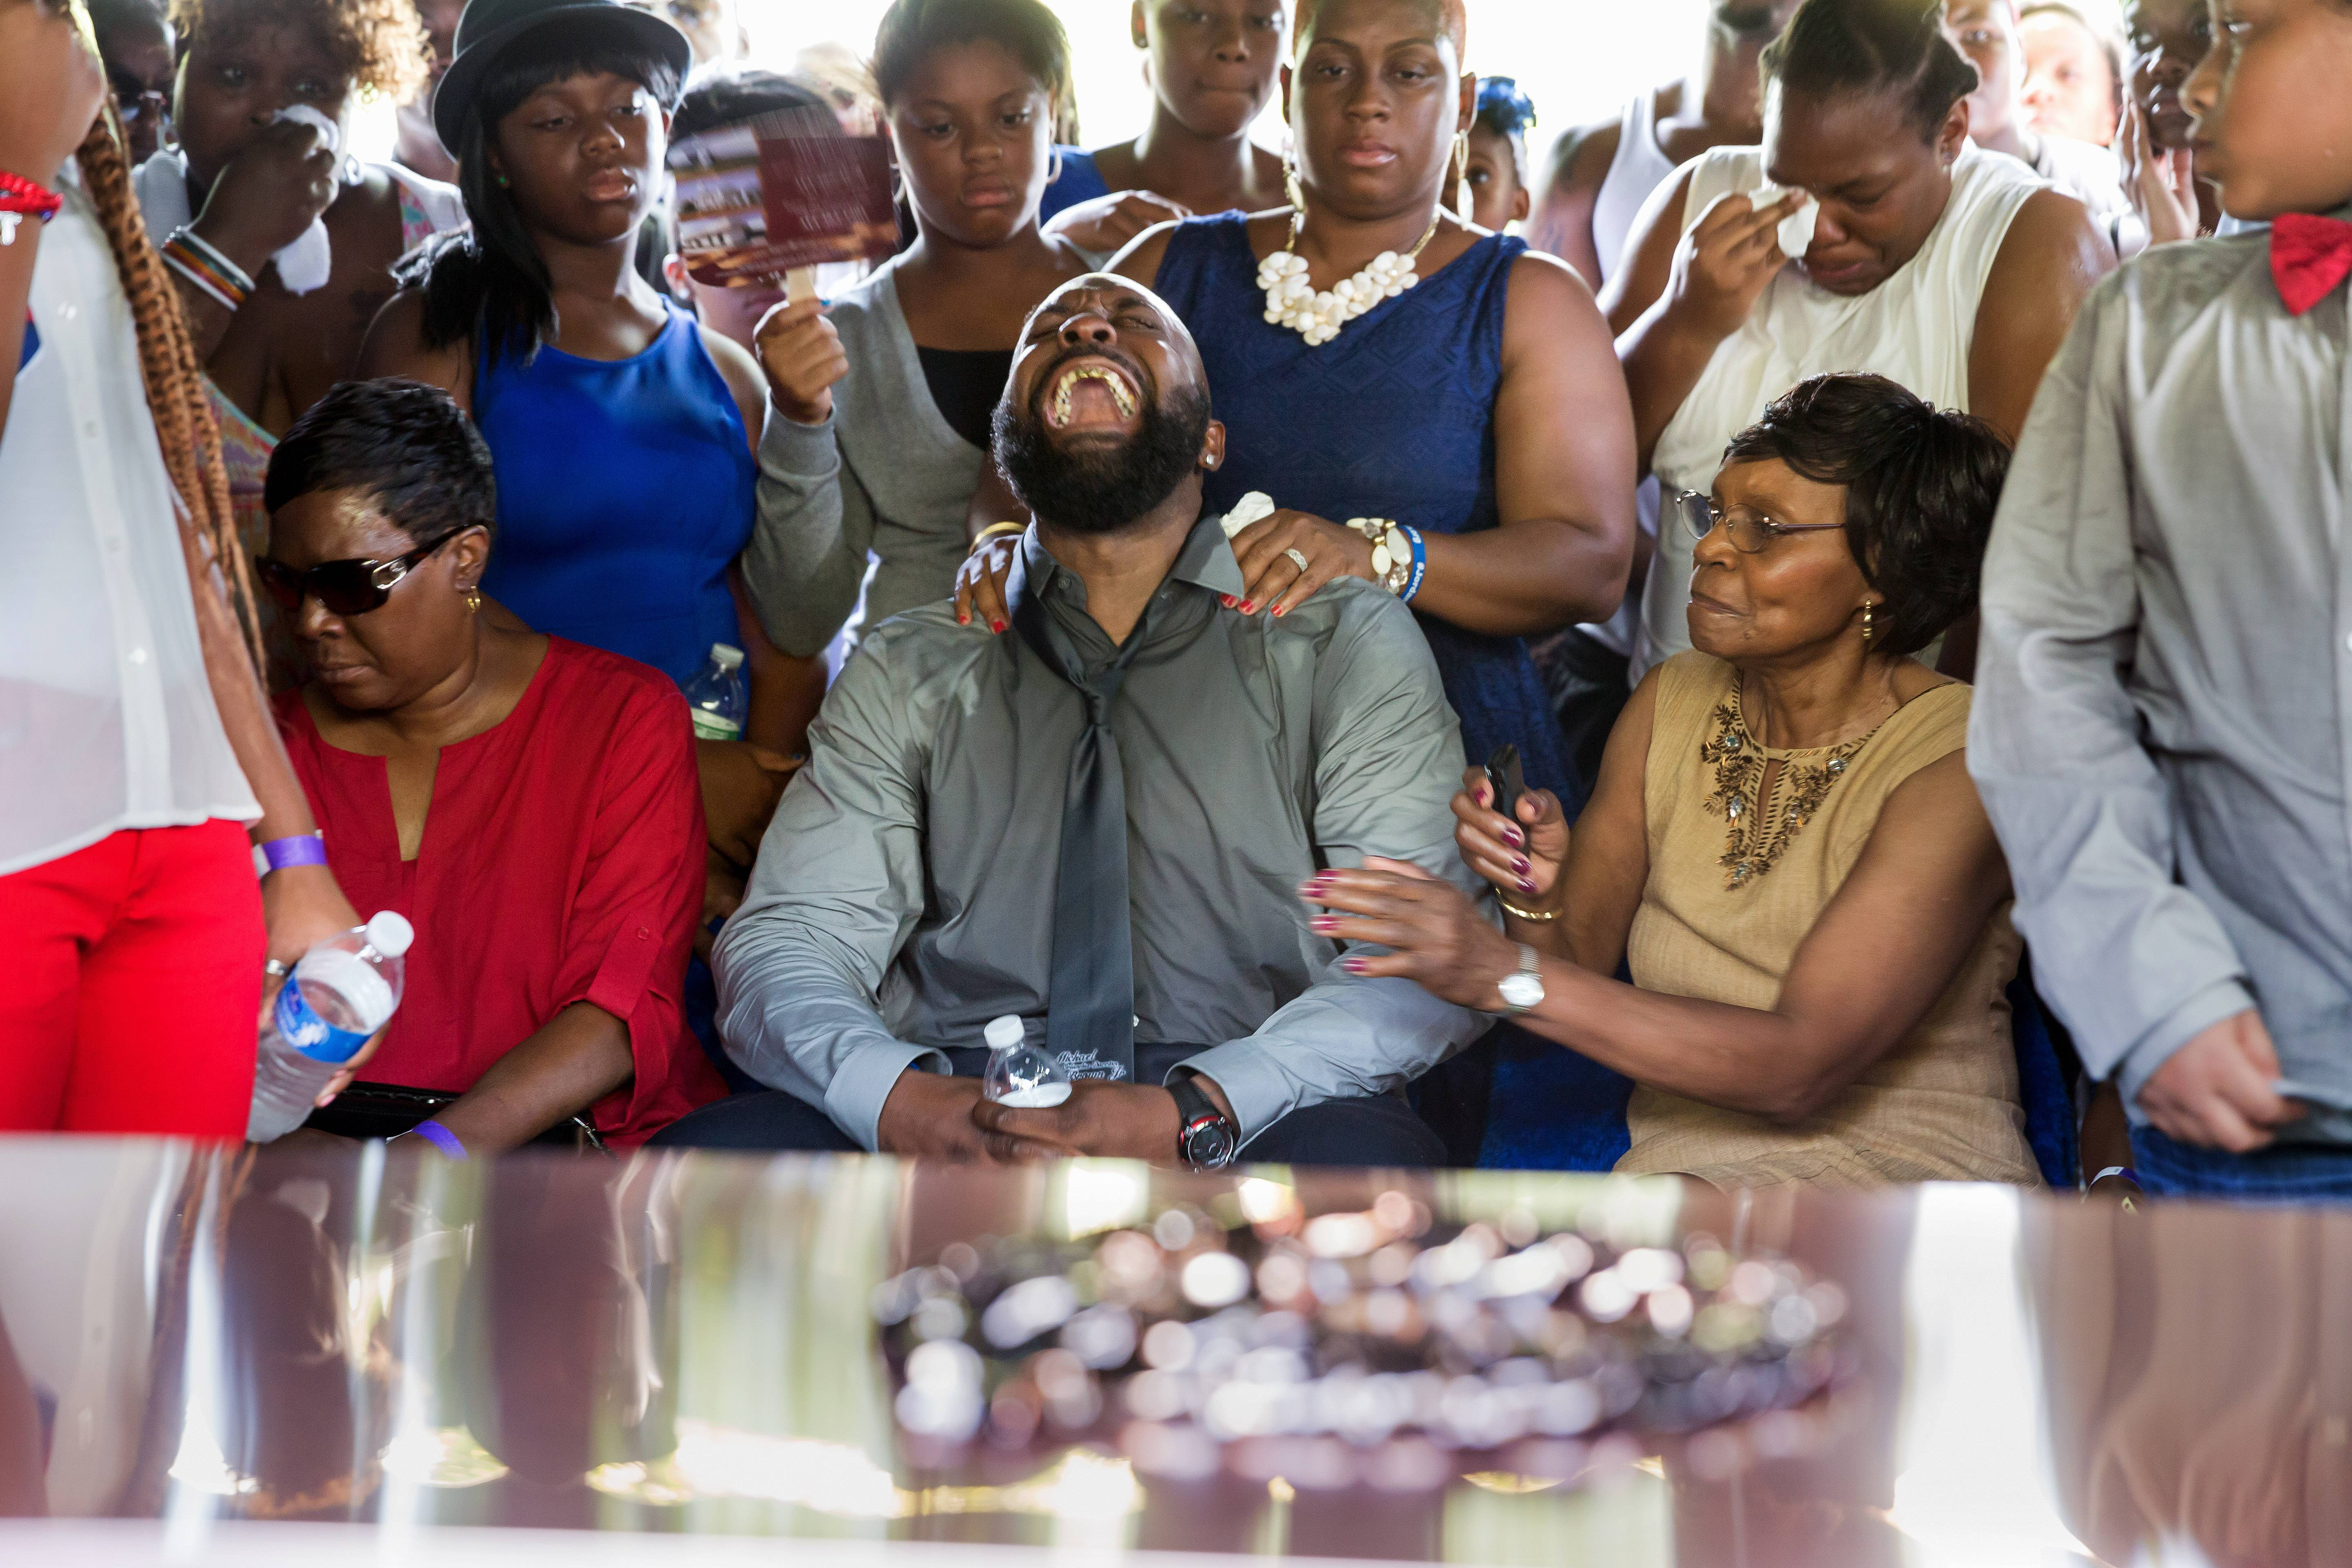 Michael Brown Sr. yells out as the casket is lowered during the funeral service for his son Michael Brown in Normandy, Mo.